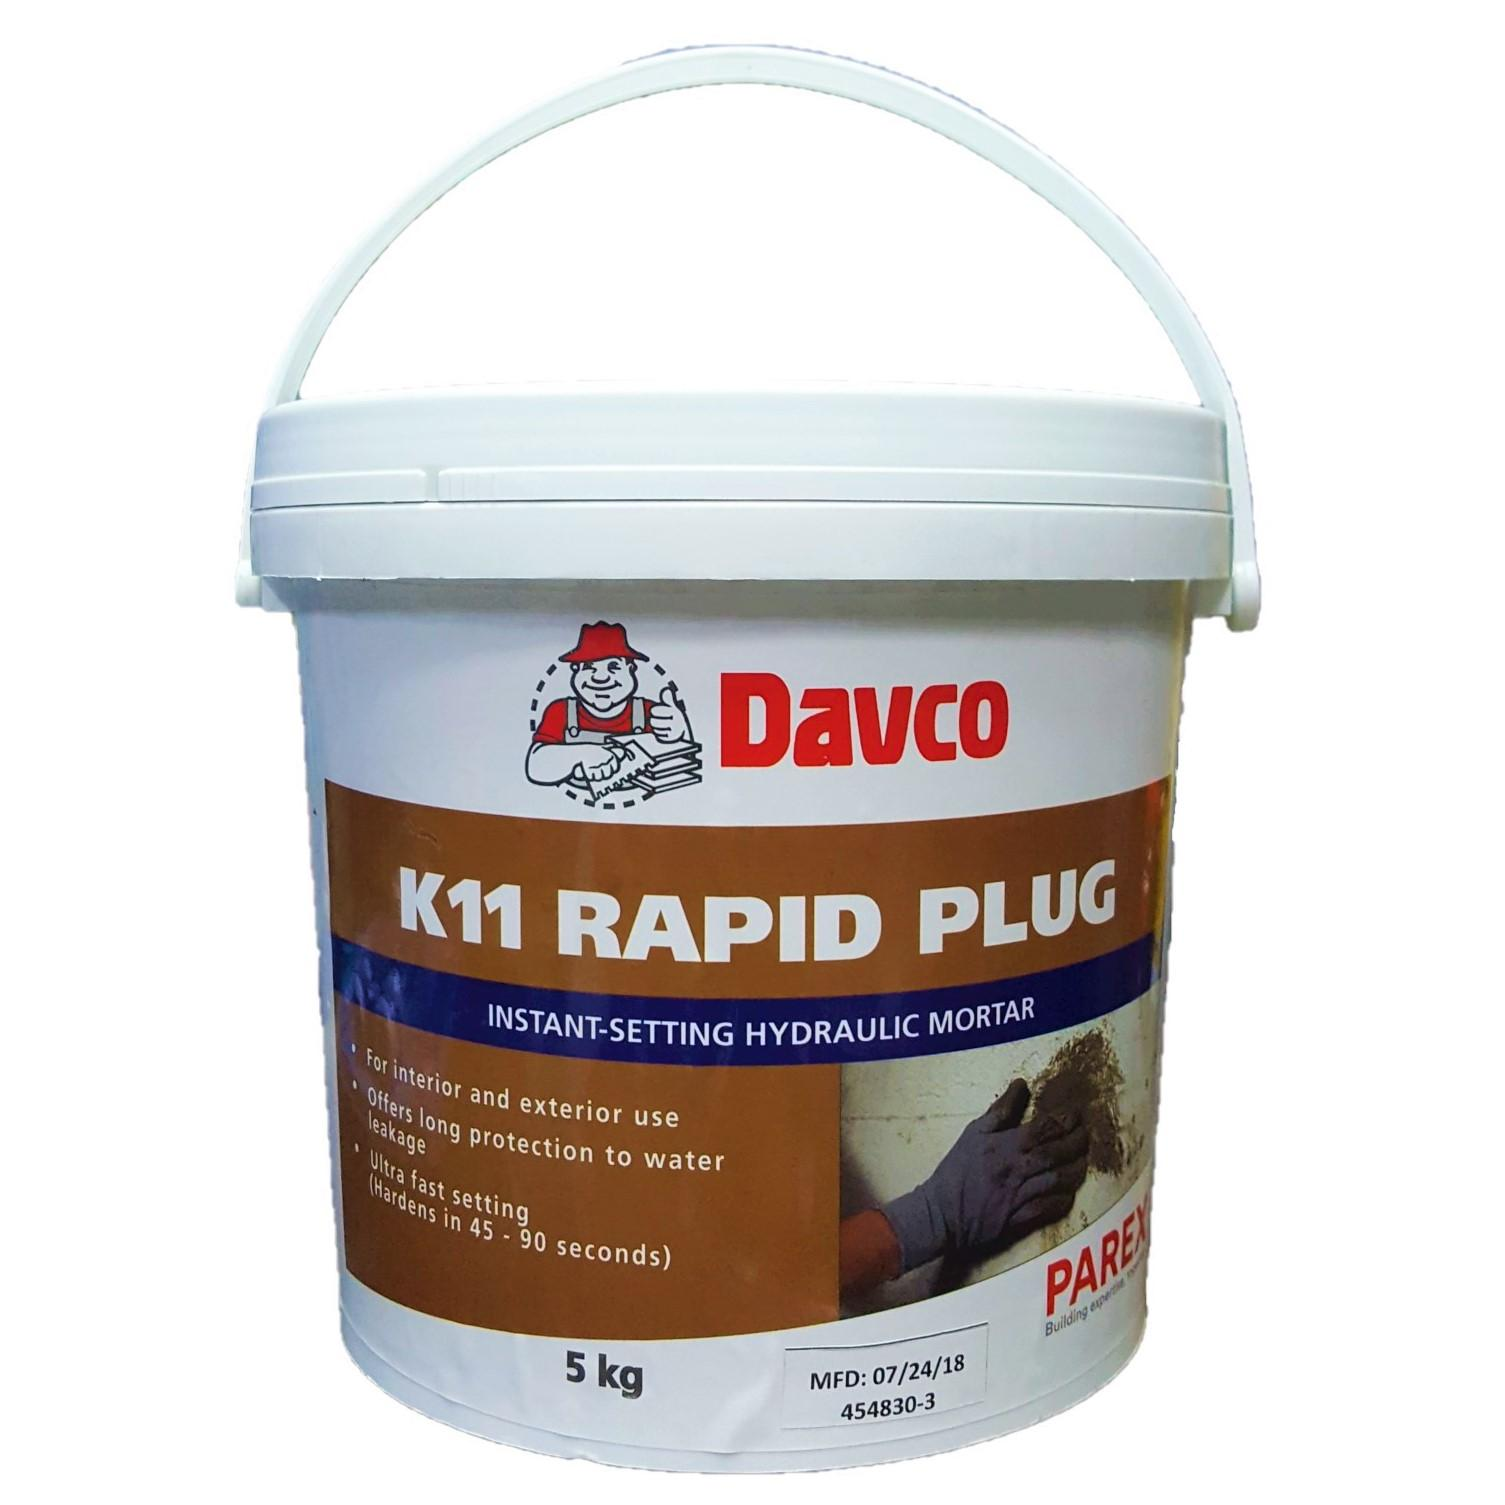 DAVCO K11 Rapid Plug Instant Setting Hydraulic Mortar for Waterproofing -  5kg